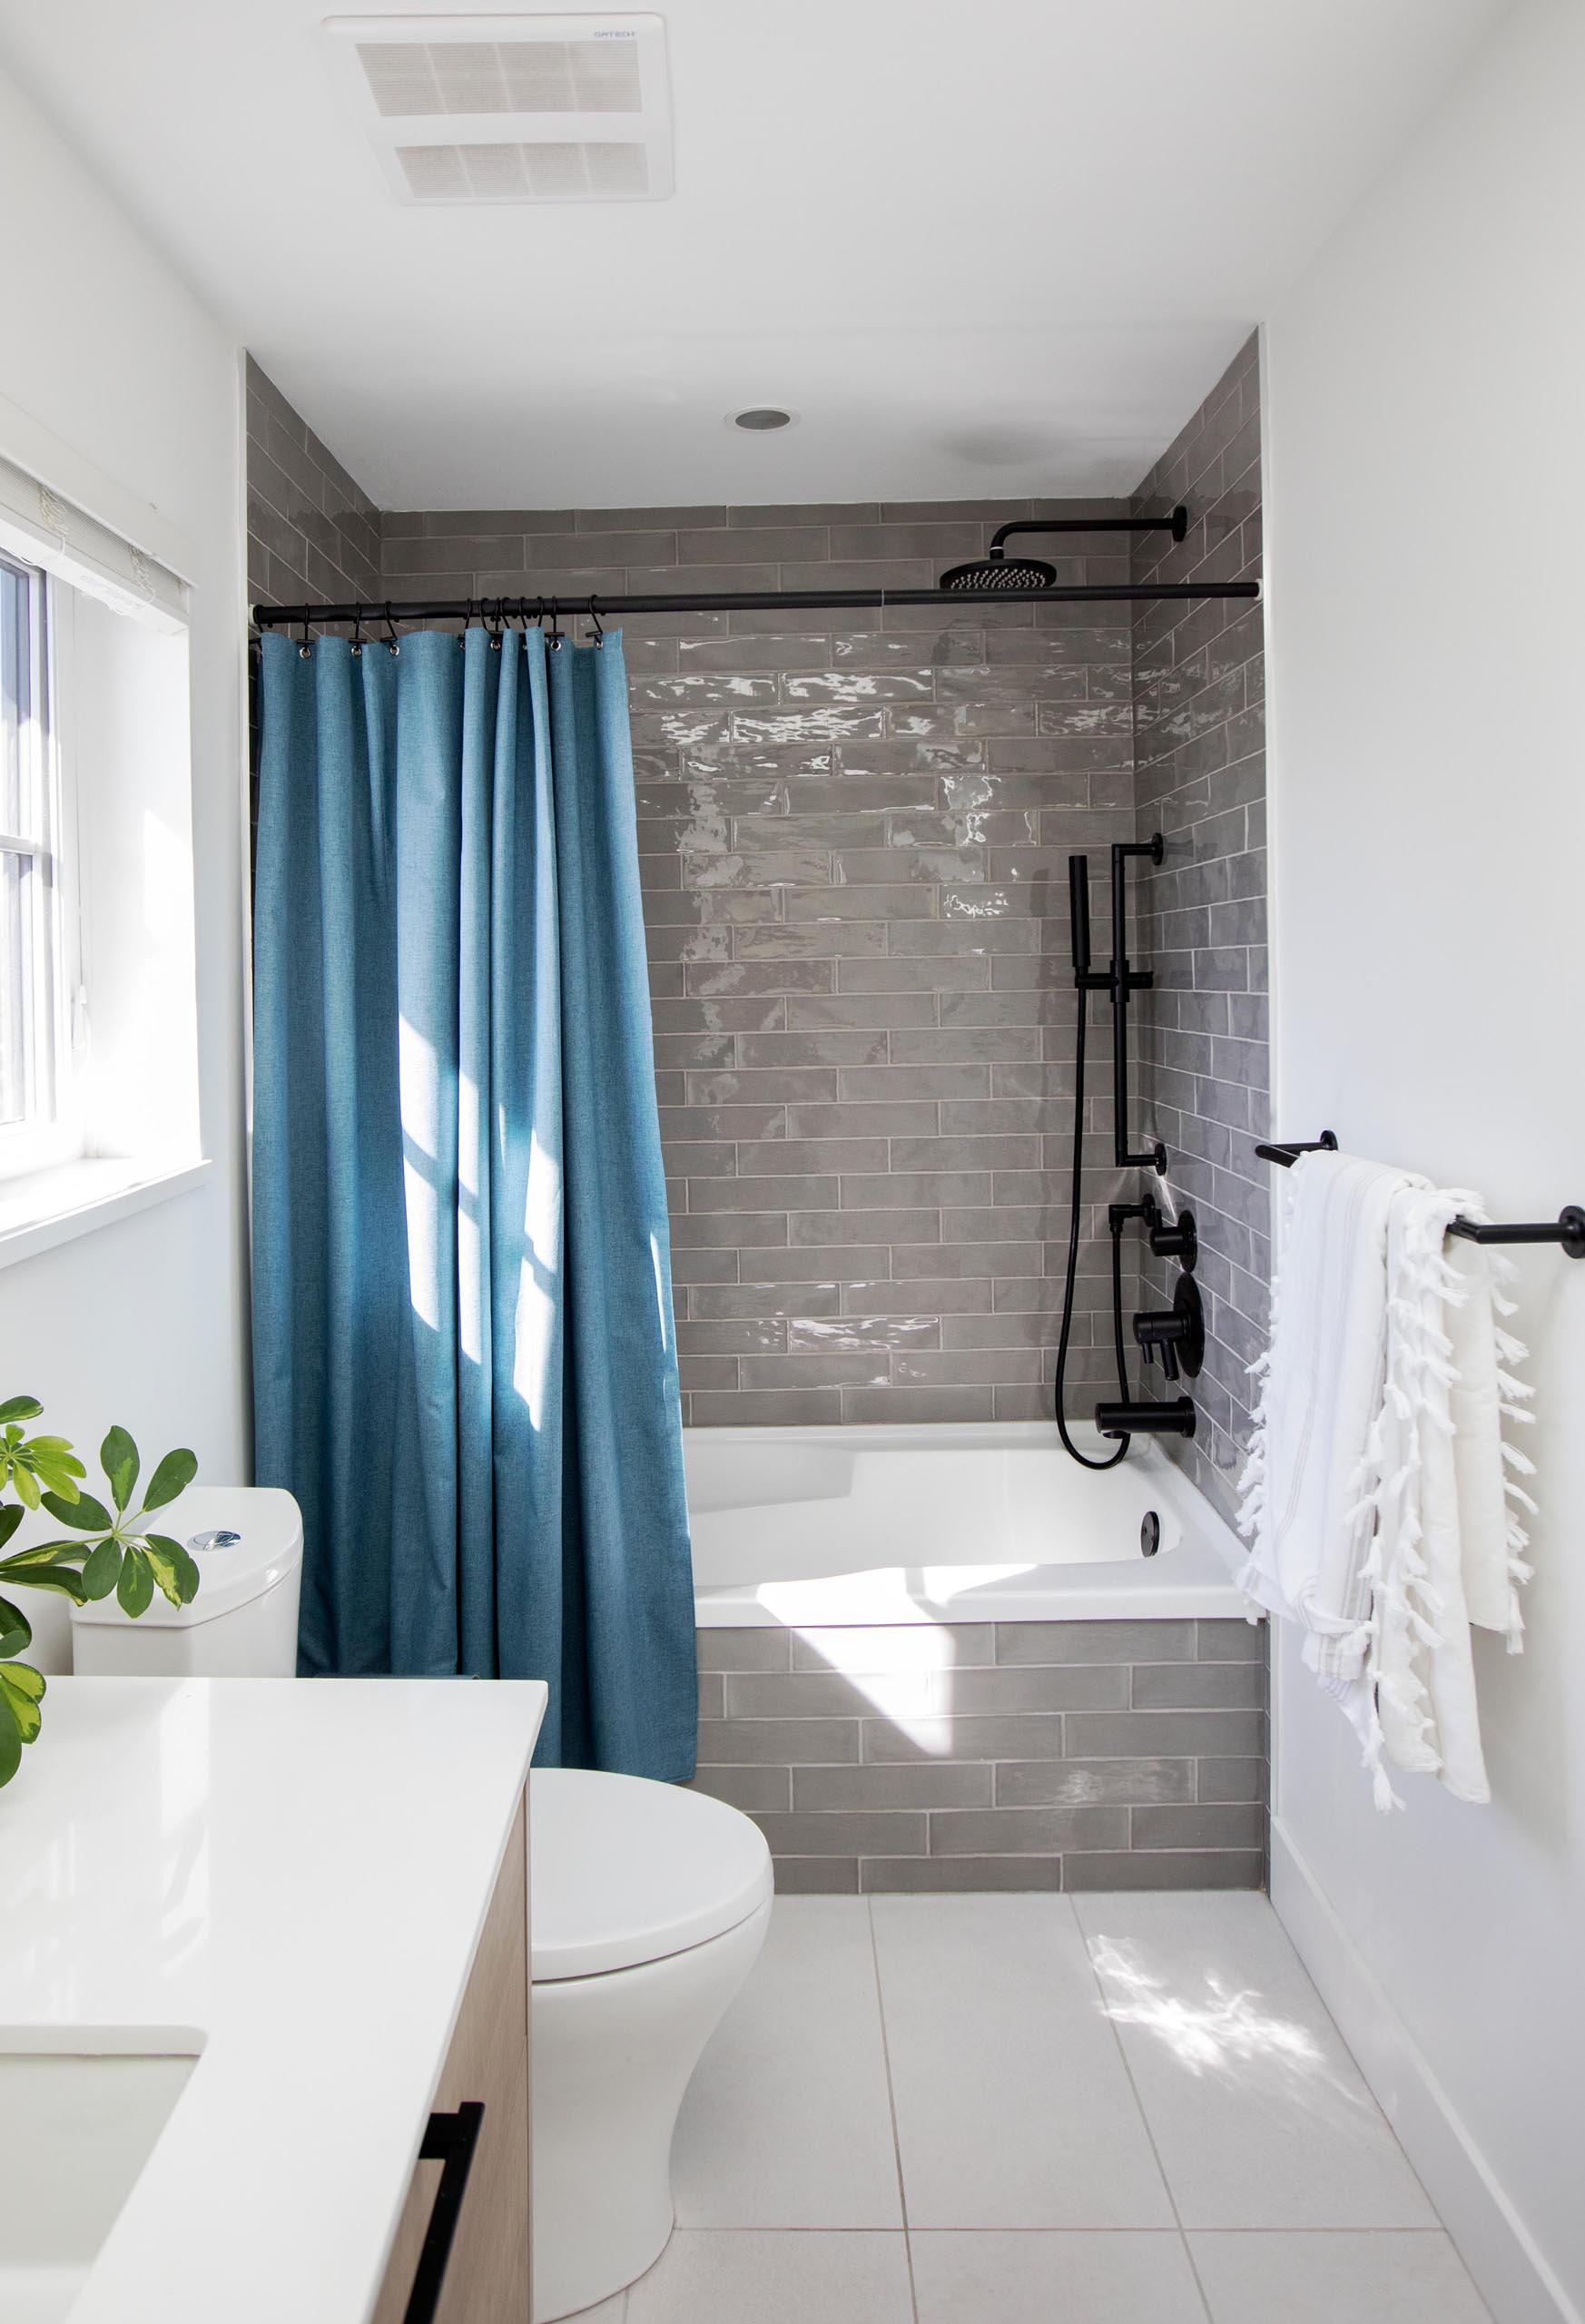 A modern bathroom with a gray-tiled shower, black hardware, and blue shower curtain.